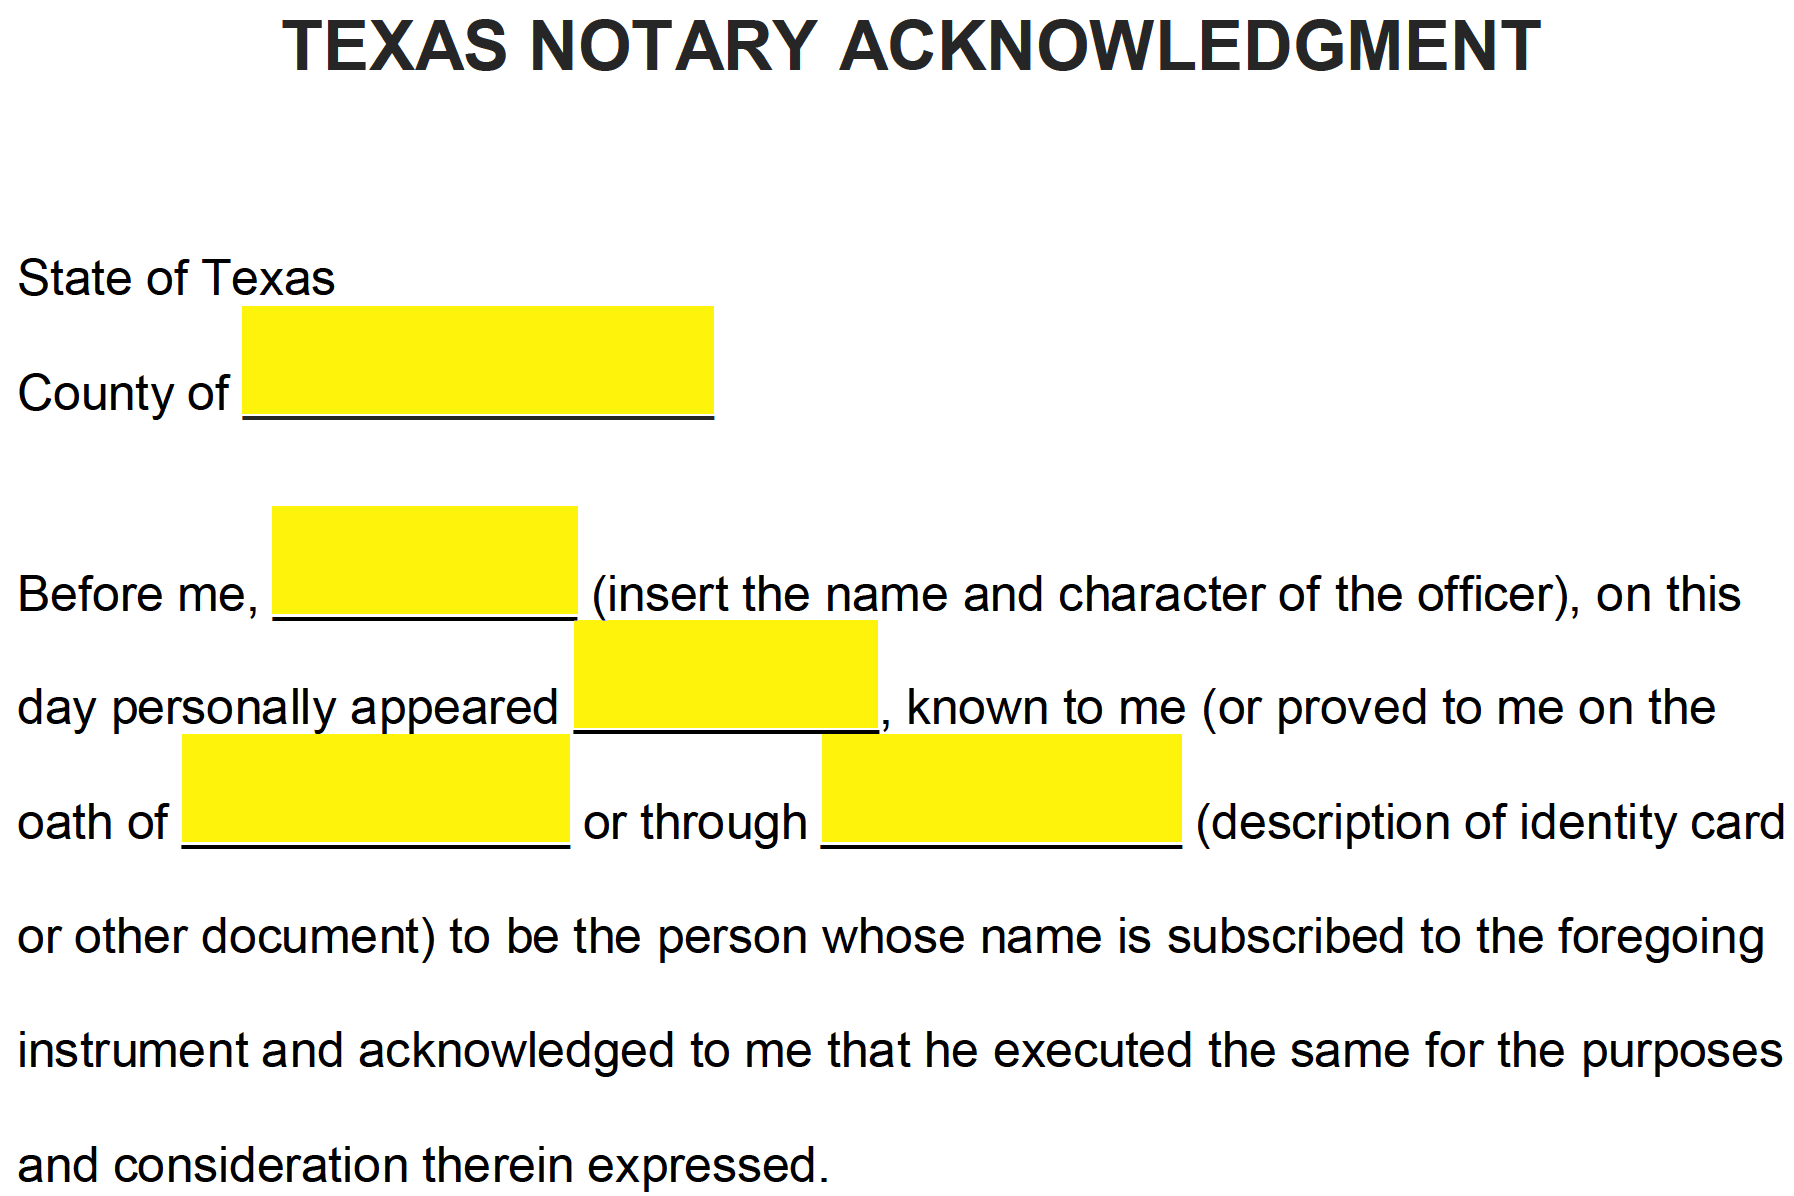 picture about Printable Notary Forms Texas titled Absolutely free Texas Notary Acknowledgment Variety - PDF Term eForms